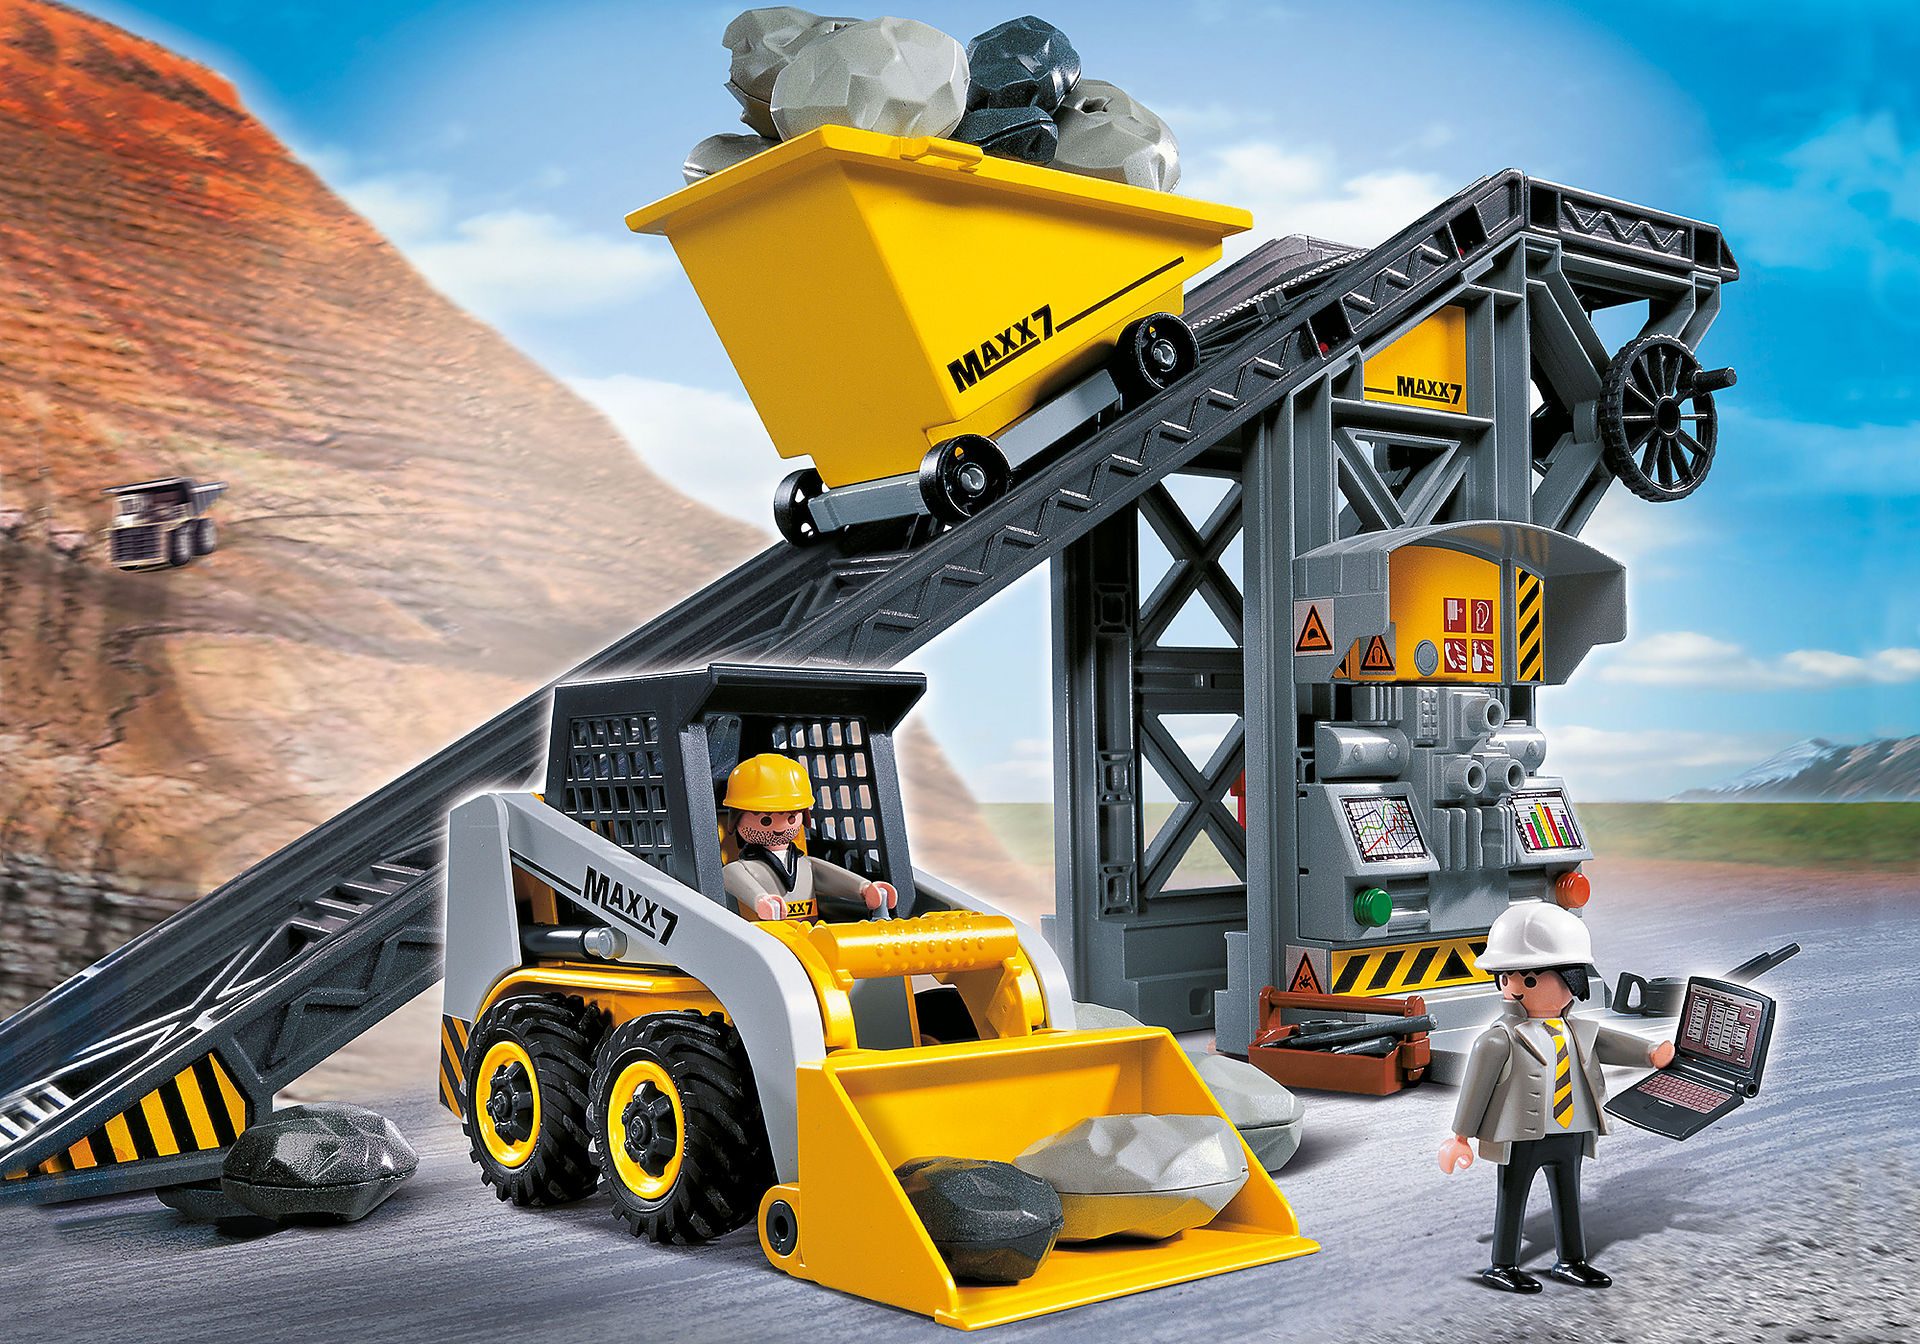 4041 Conveyor Belt with Mini Excavator zoom image1